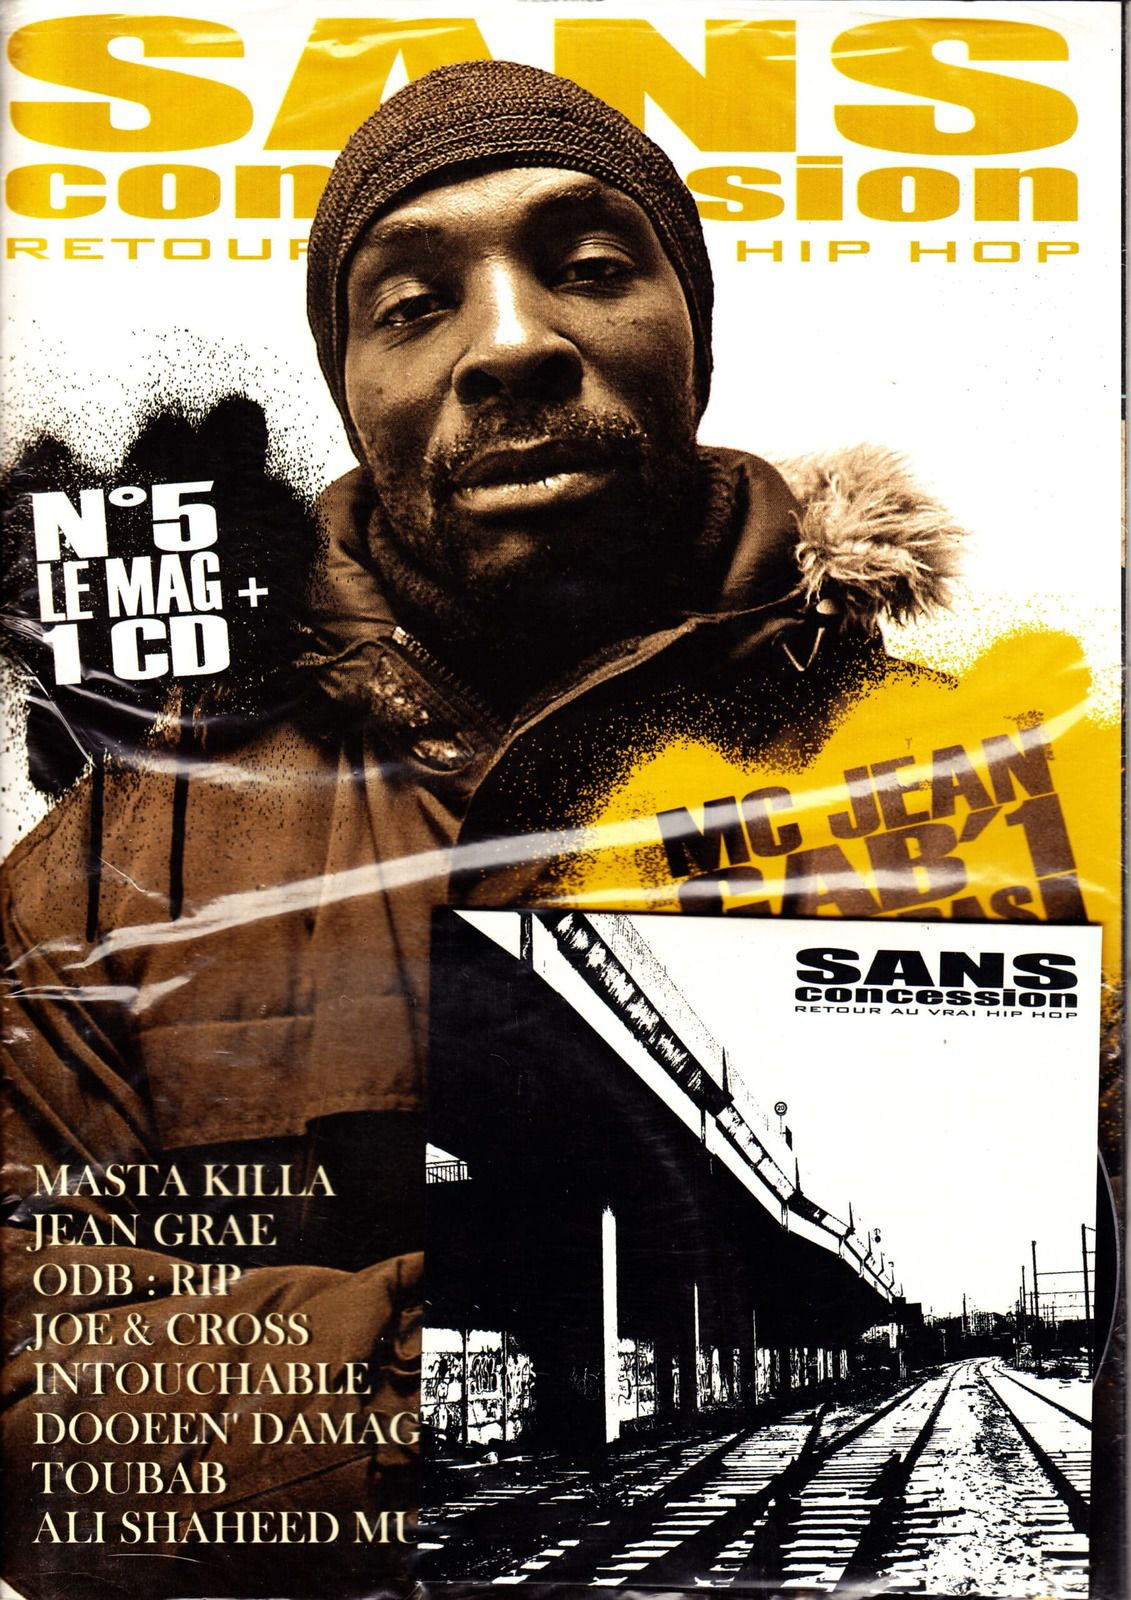 MC Jean Gab'1, Masta Killa, Jean Grae, Joe & Cross, Intouchable, Dooen'Damage et Toubab (ANPE) - Sans concession (fanzine hip-hop) - le rap c'était mieux avant